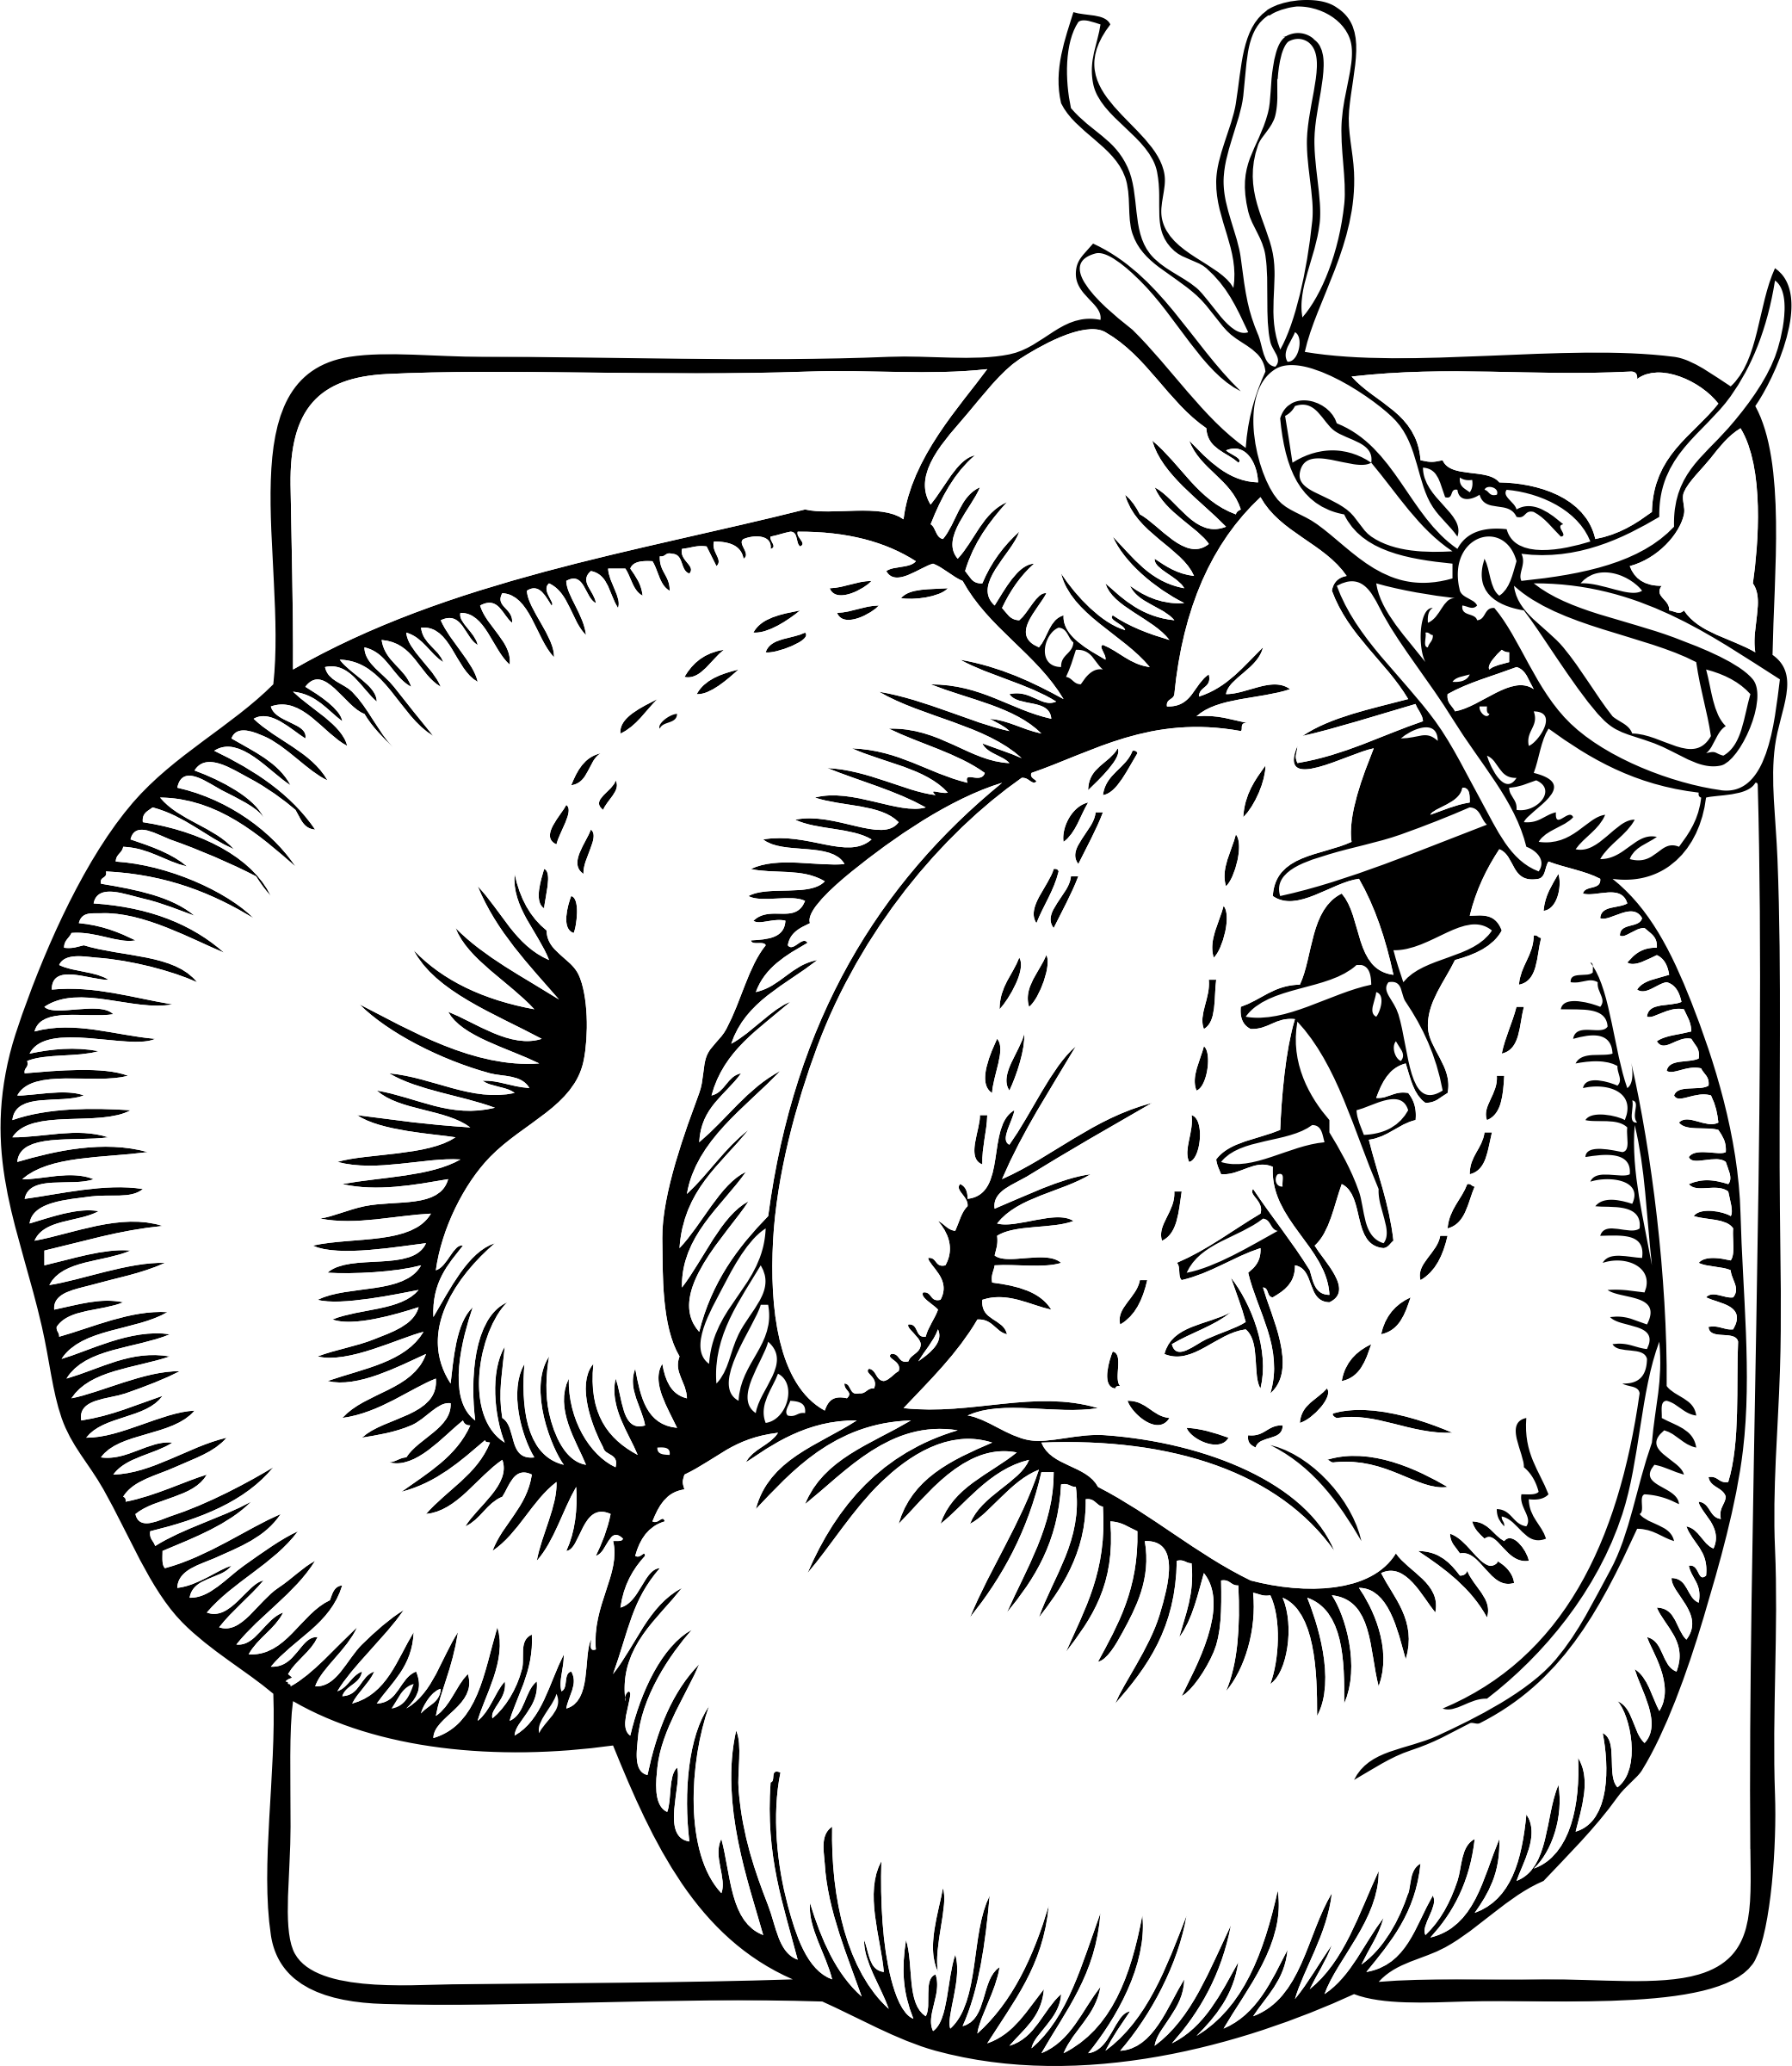 Boxing gloves big image. Mittens clipart printable